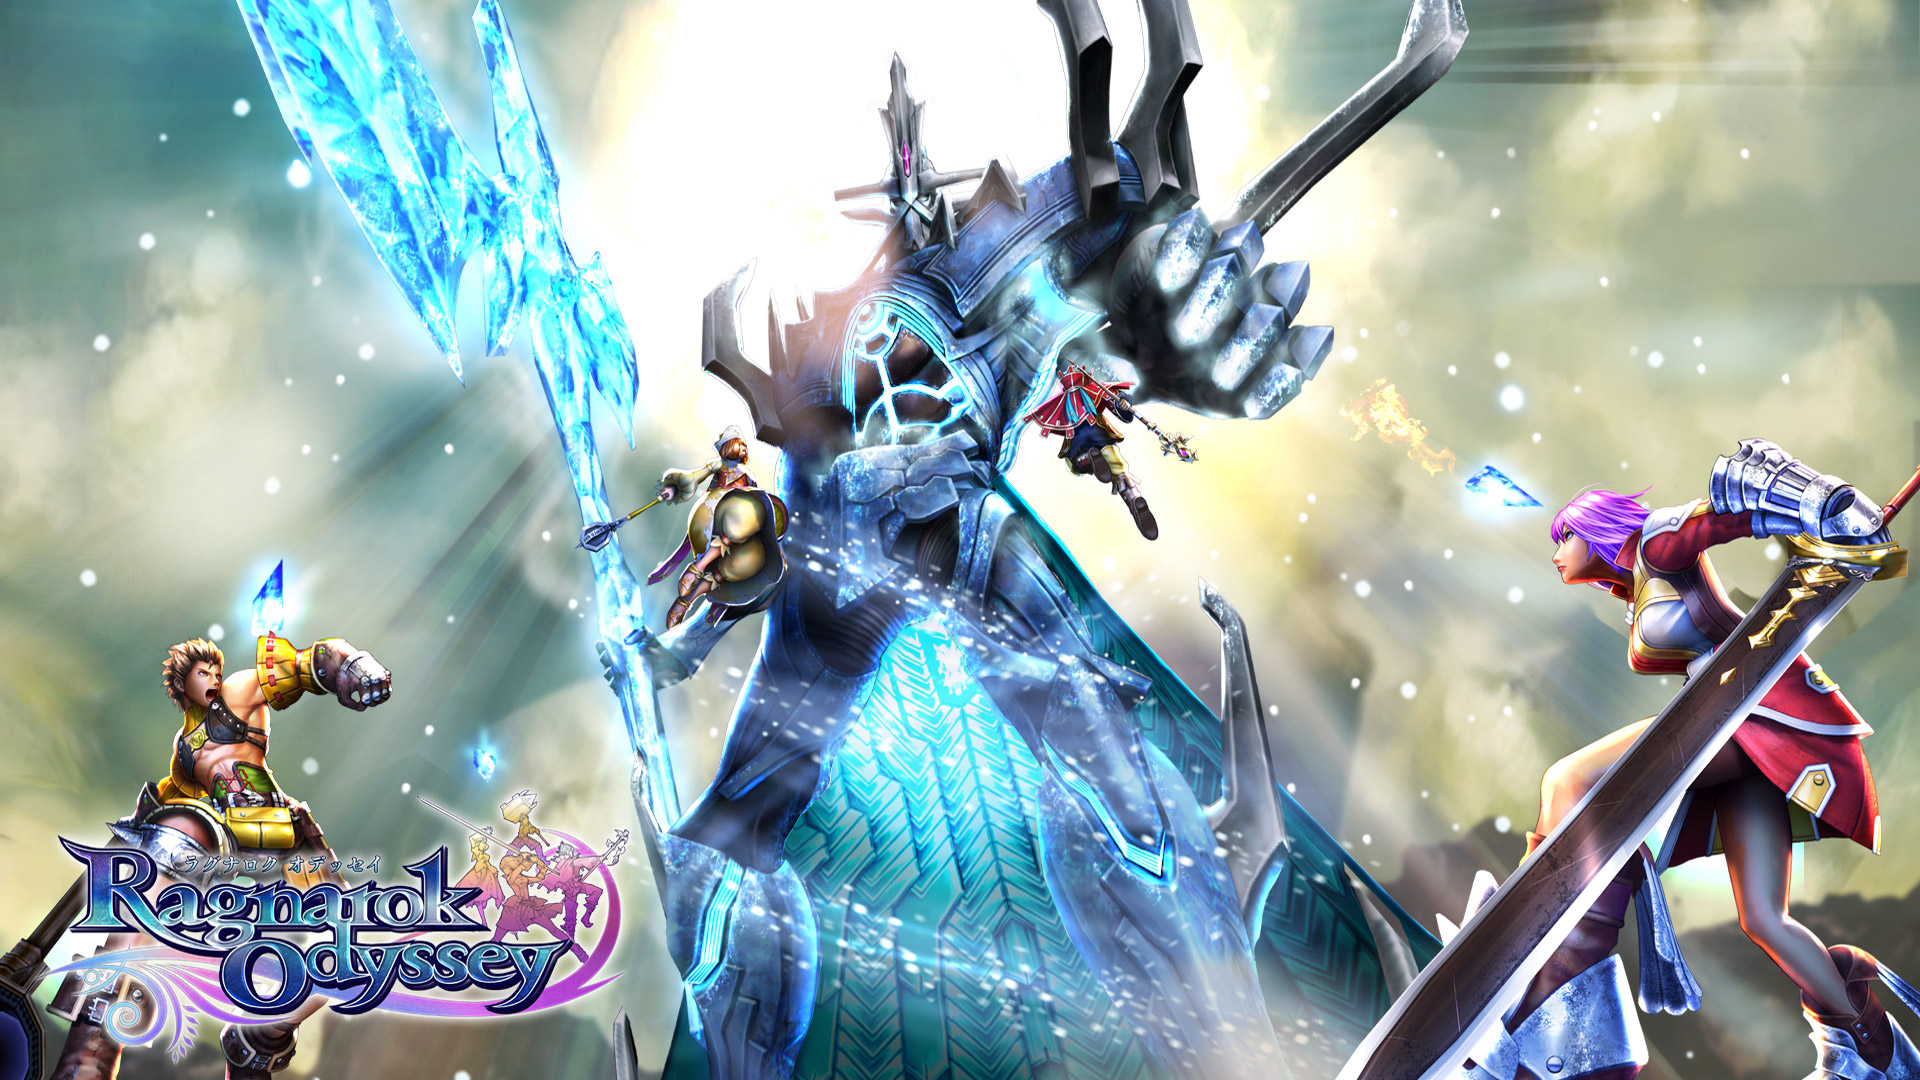 Free Ragnarok Odyssey Wallpaper in 1920x1080